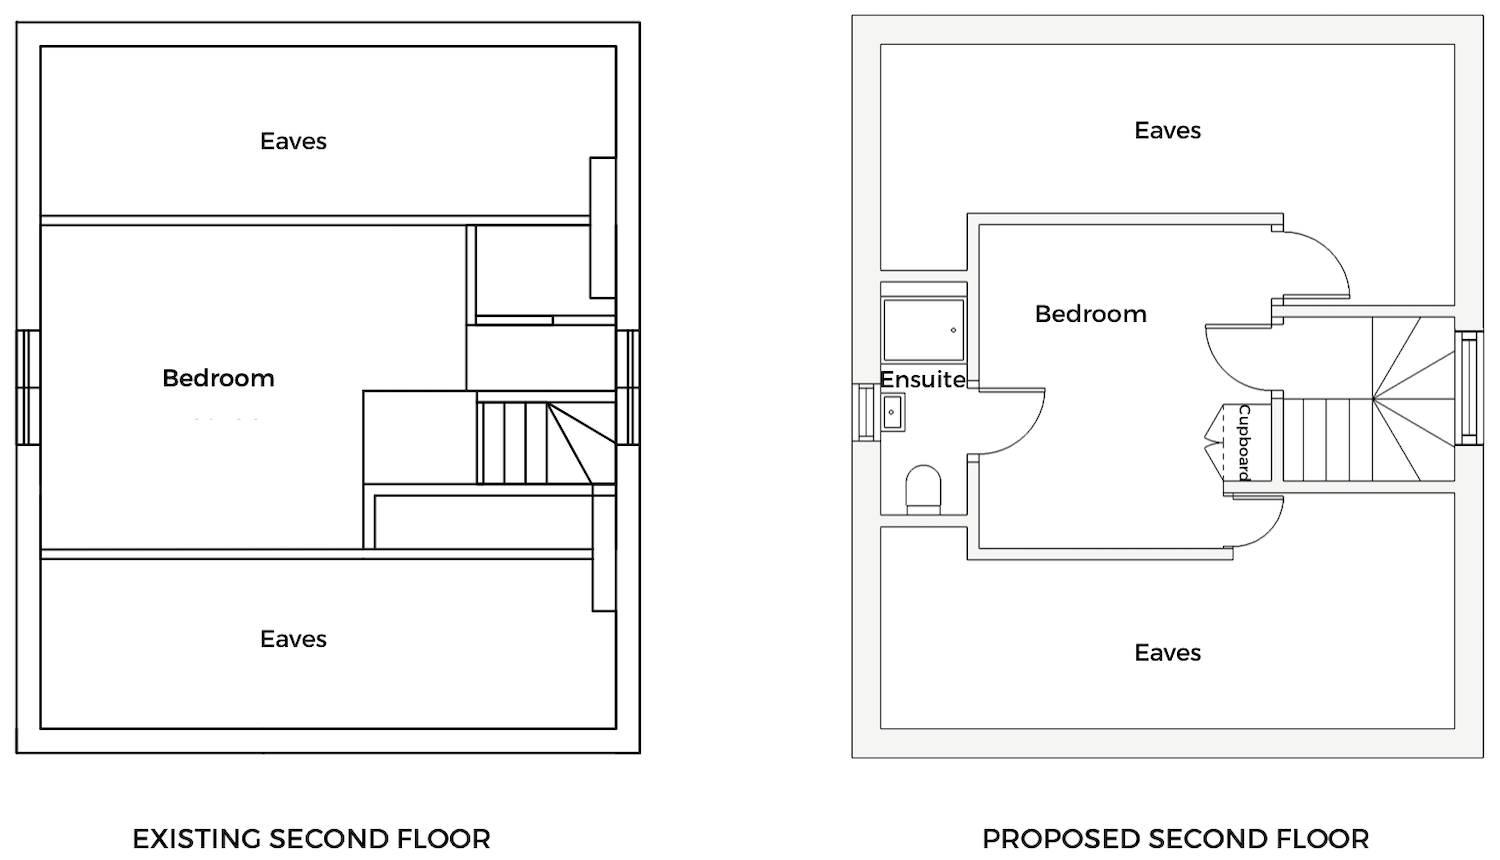 Existing and proposed second floor layout - First Sense Renovation